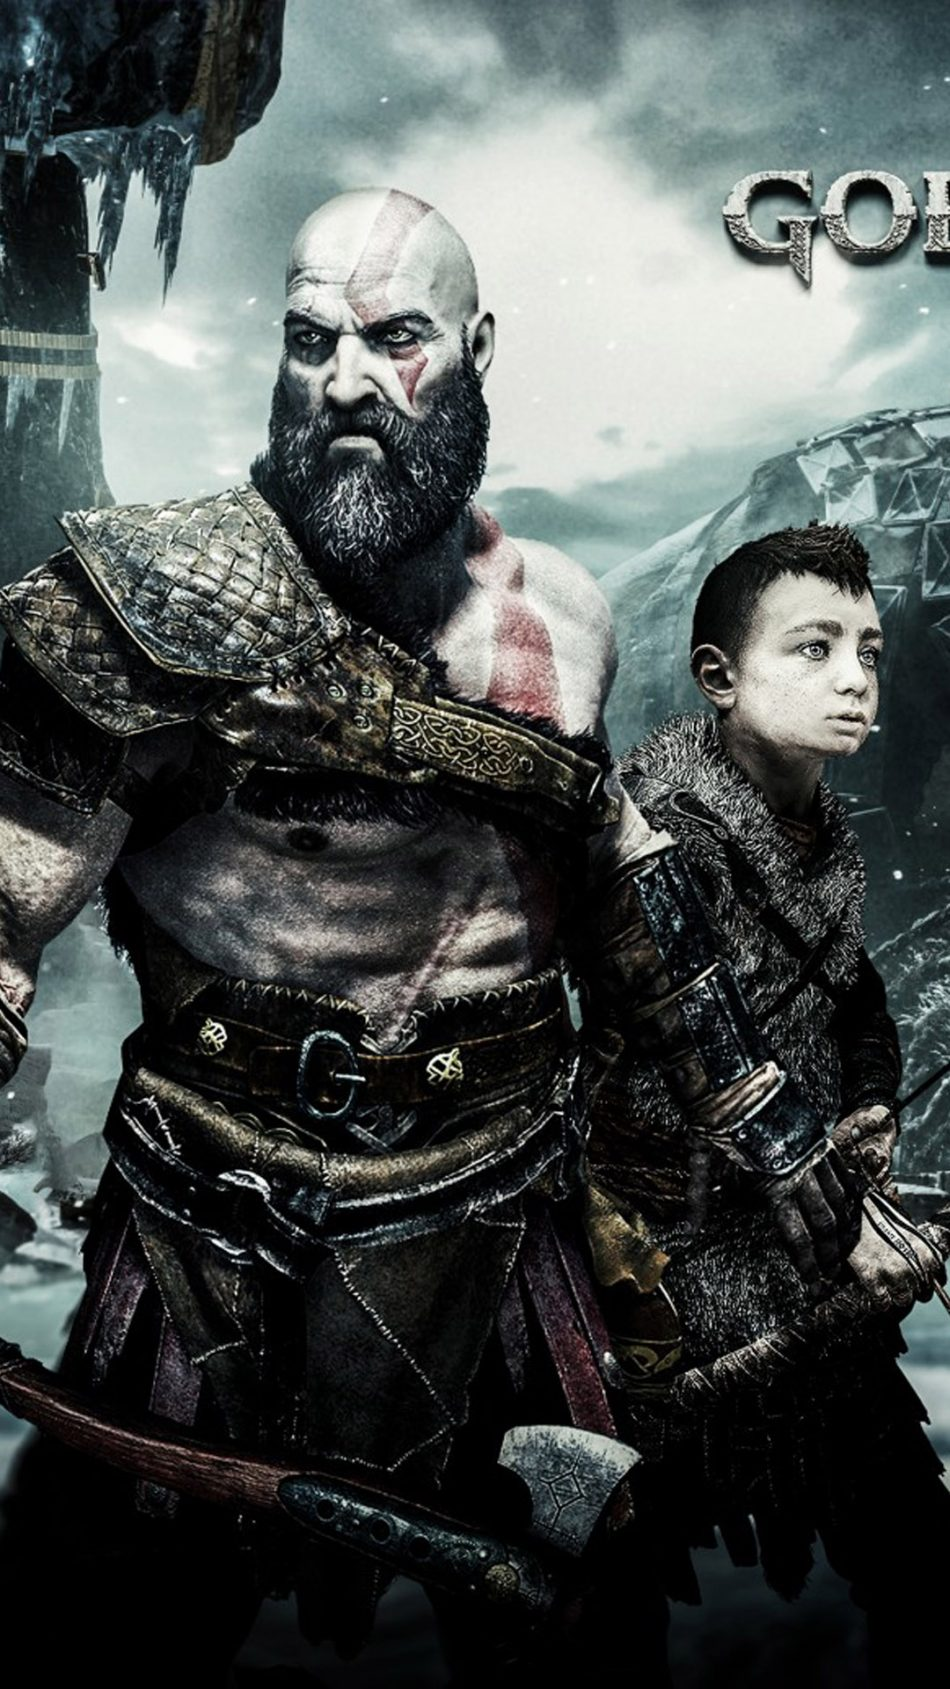 Kratos Atreus Together In God Of War Free 4k Ultra Hd Mobile